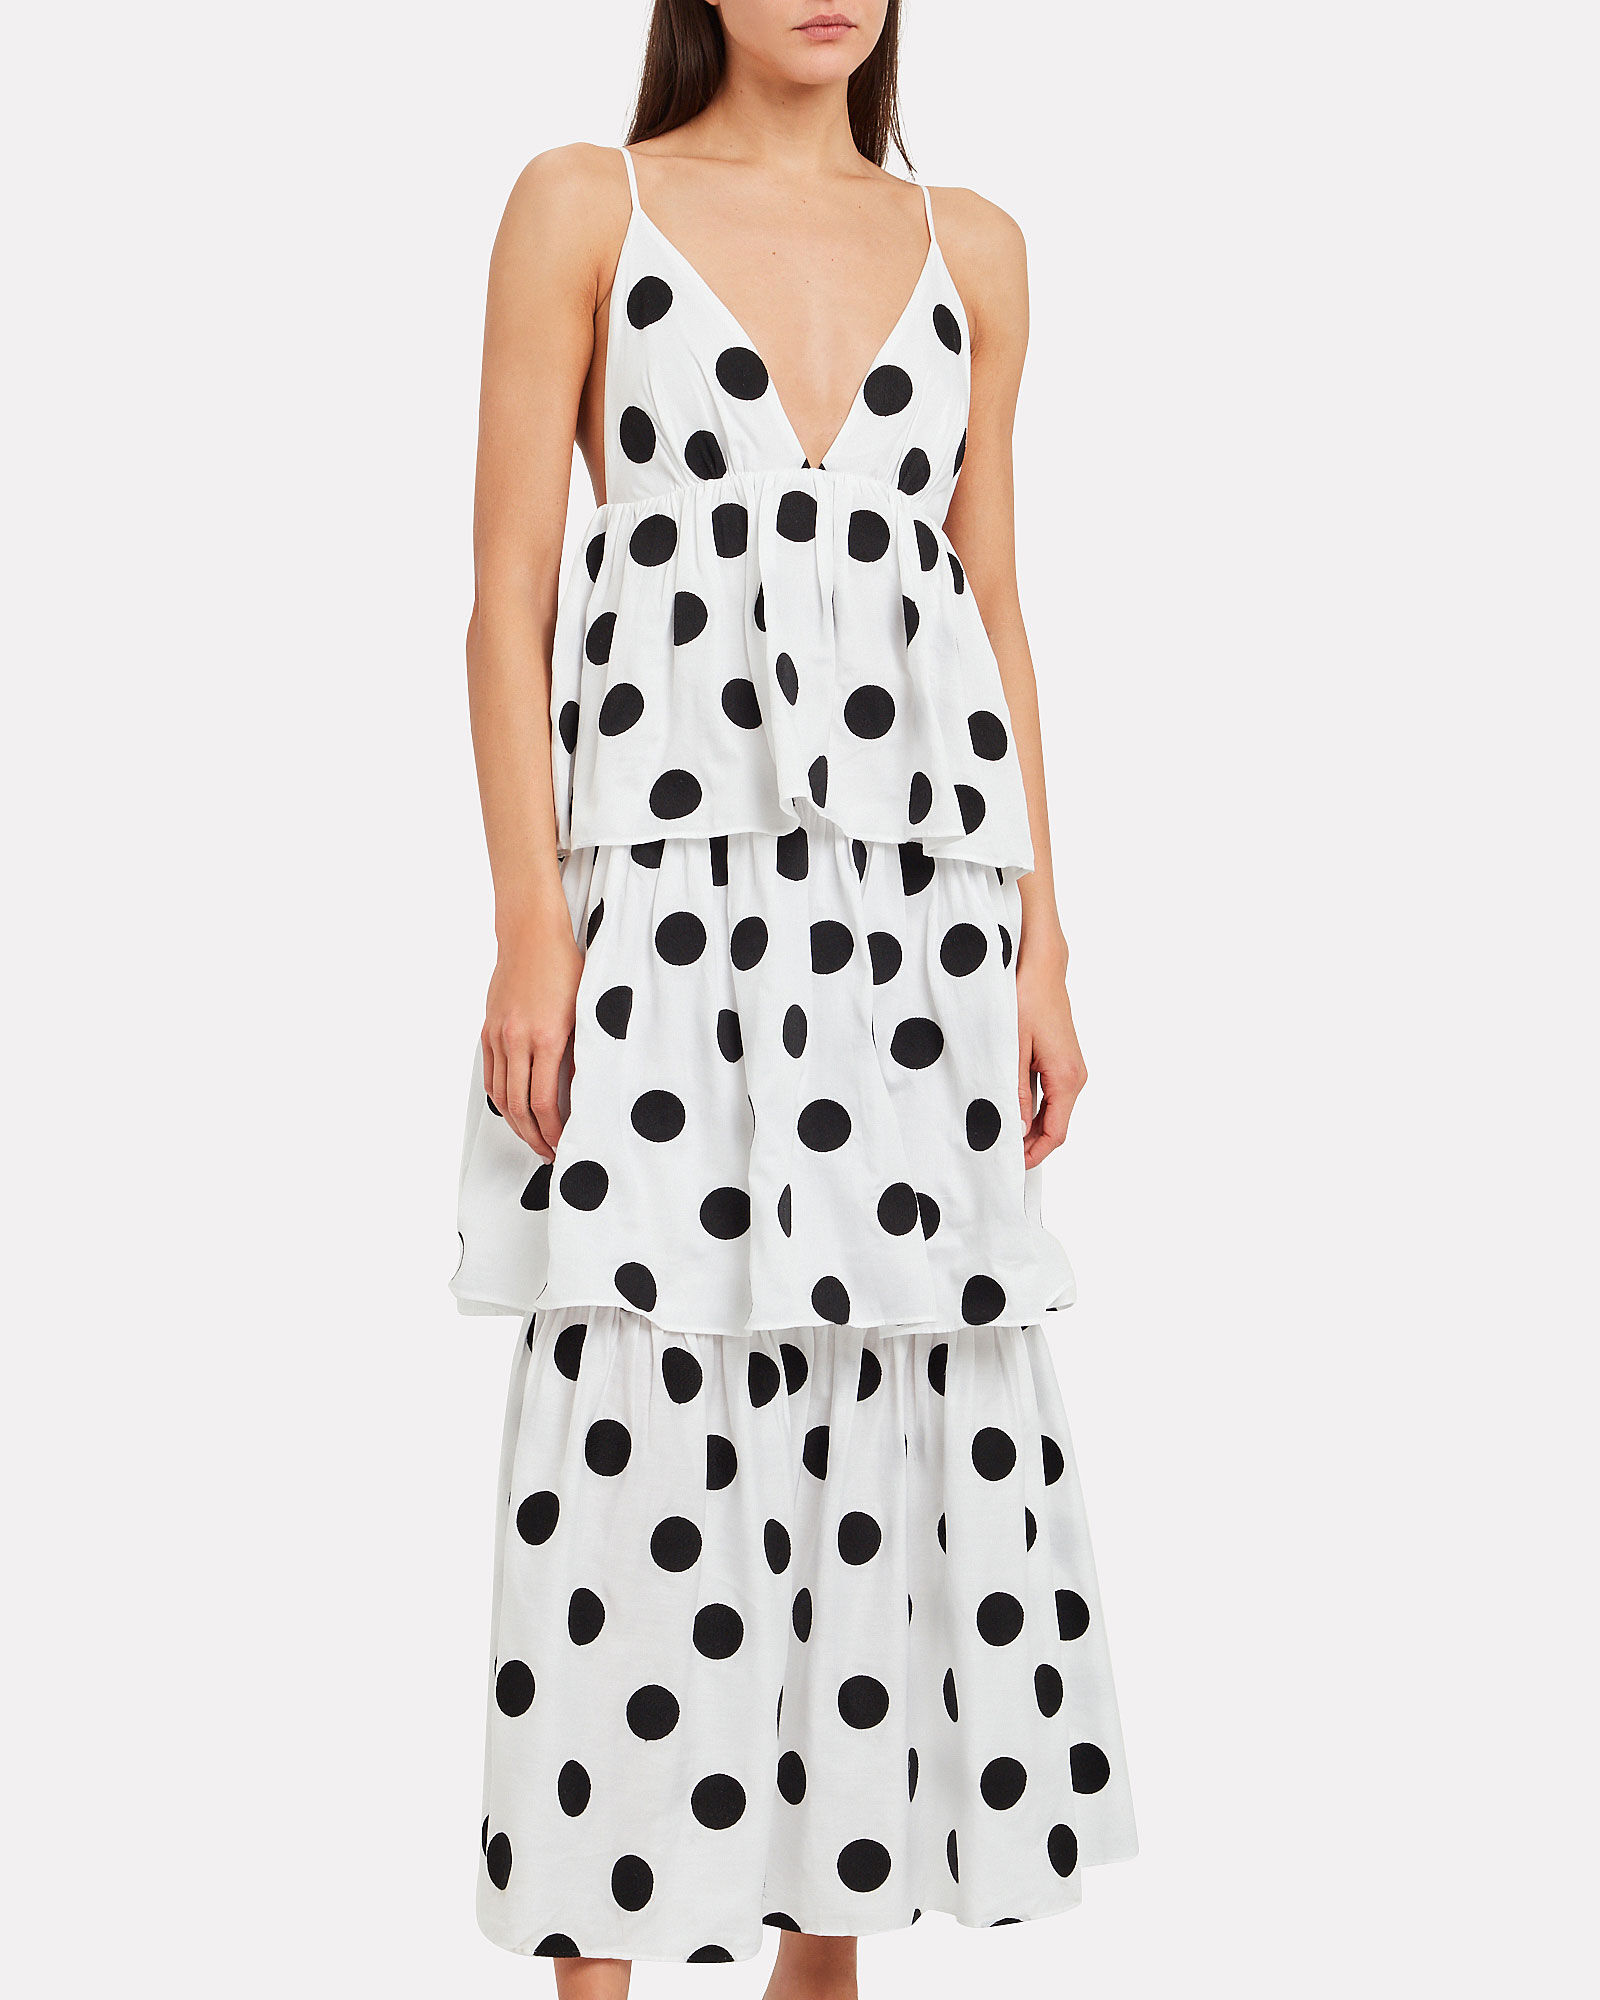 Bari Polka Dot Cotton Poplin Dress, BLACK/WHITE, hi-res